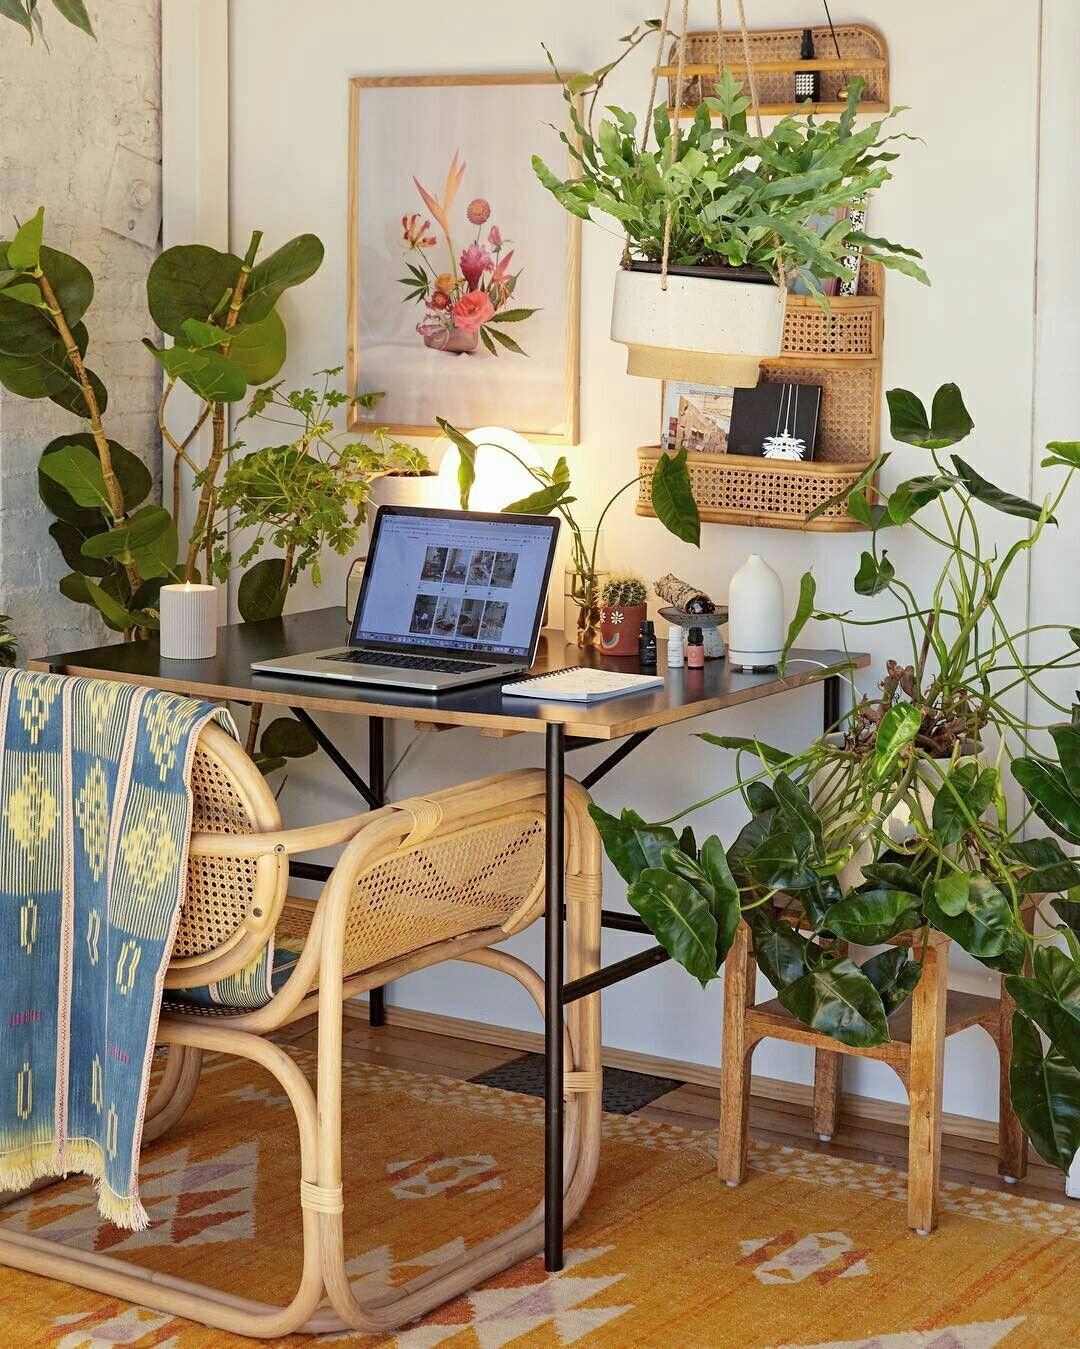 home office, wooden floor, yellow patterned rug, black simple study table, rattan chair, rattan floating shelves, wooden support, plant accessories